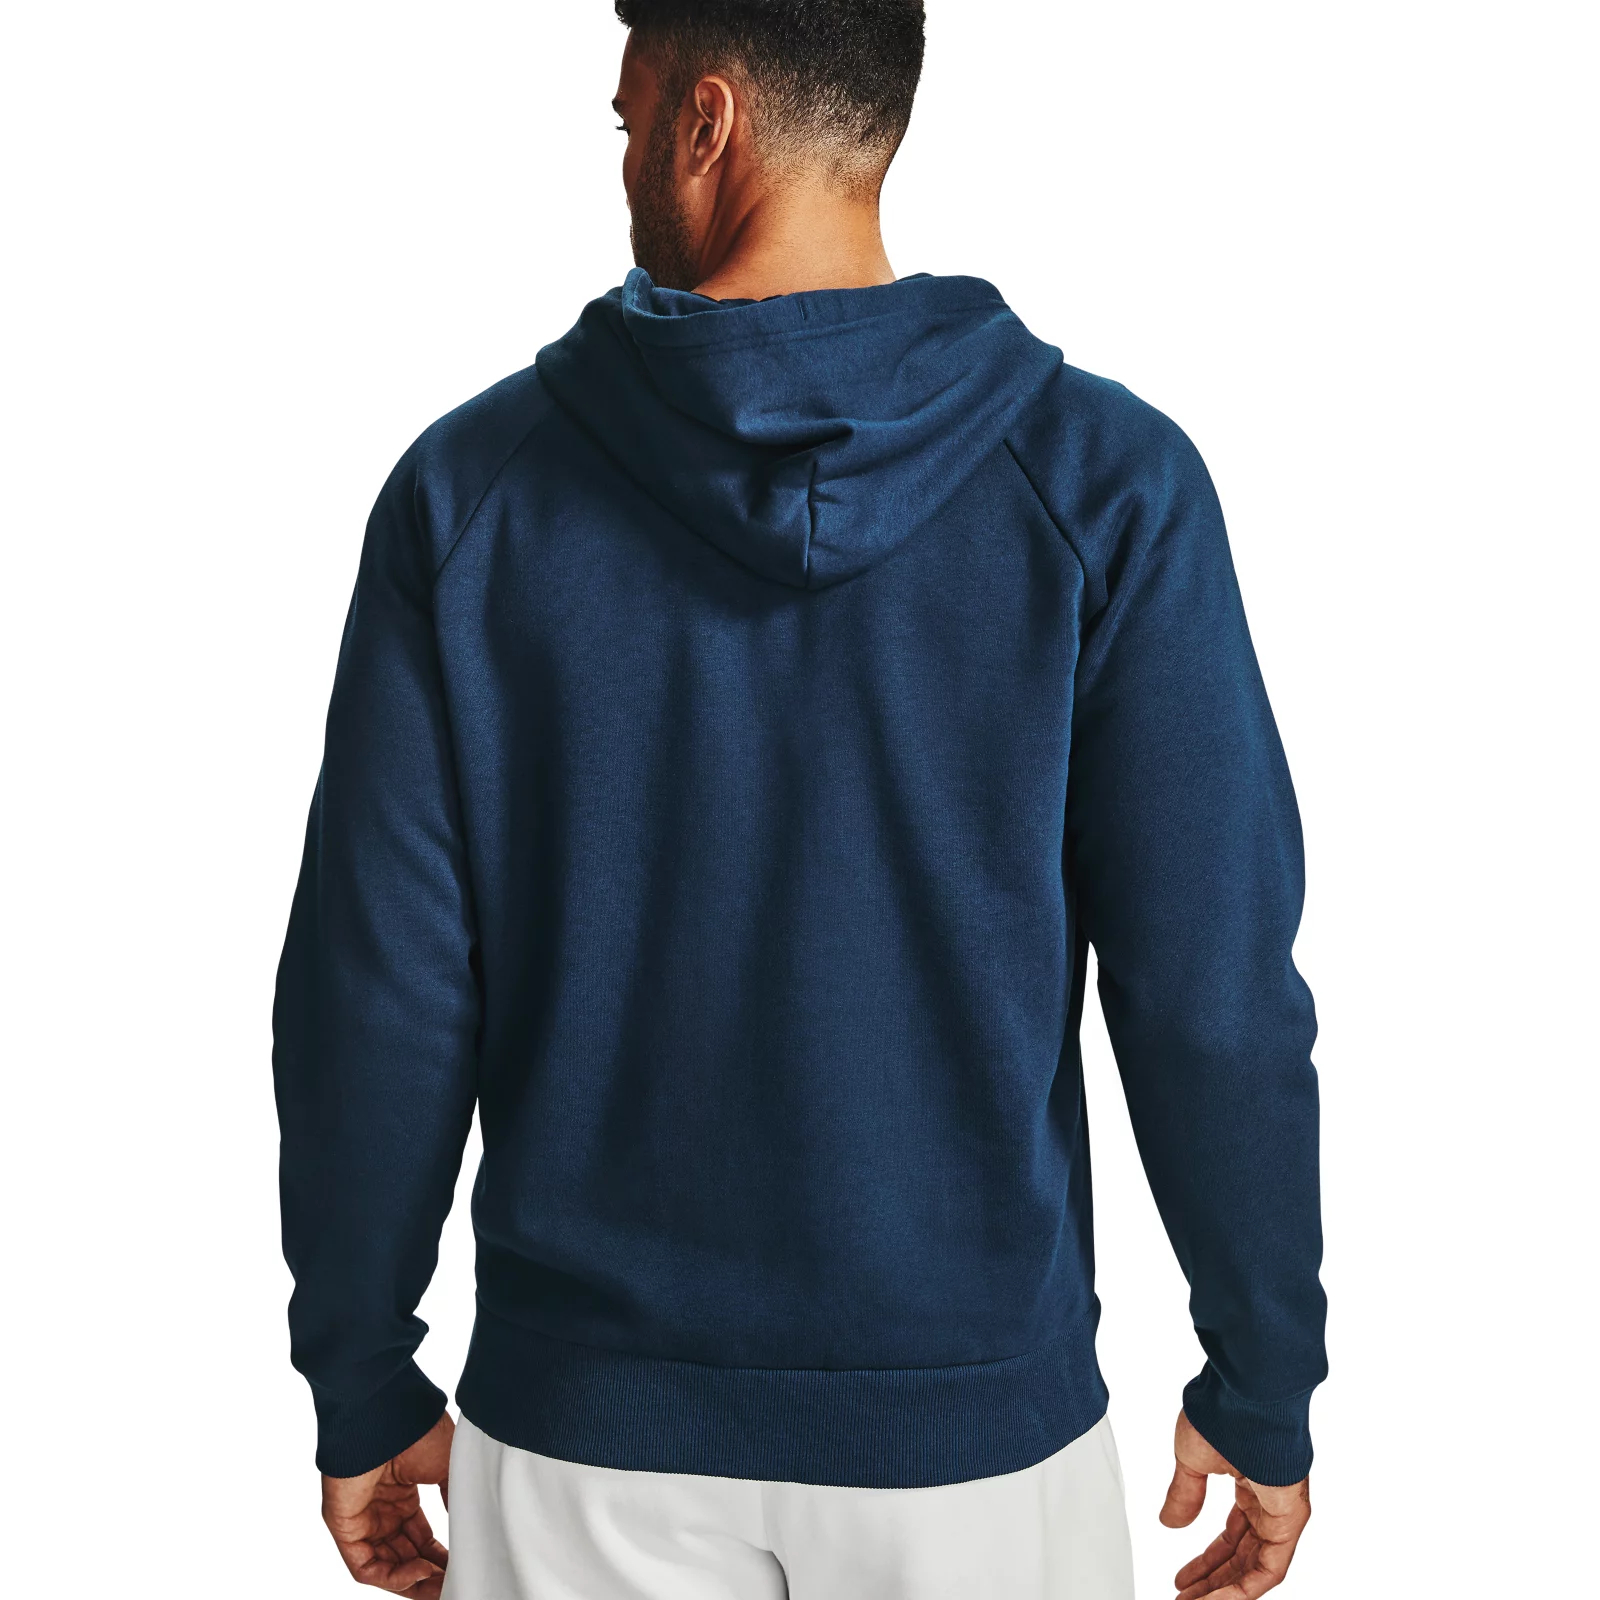 Толстовка Rival Fleece FZ Hoodie Under Armour Синий фото 27